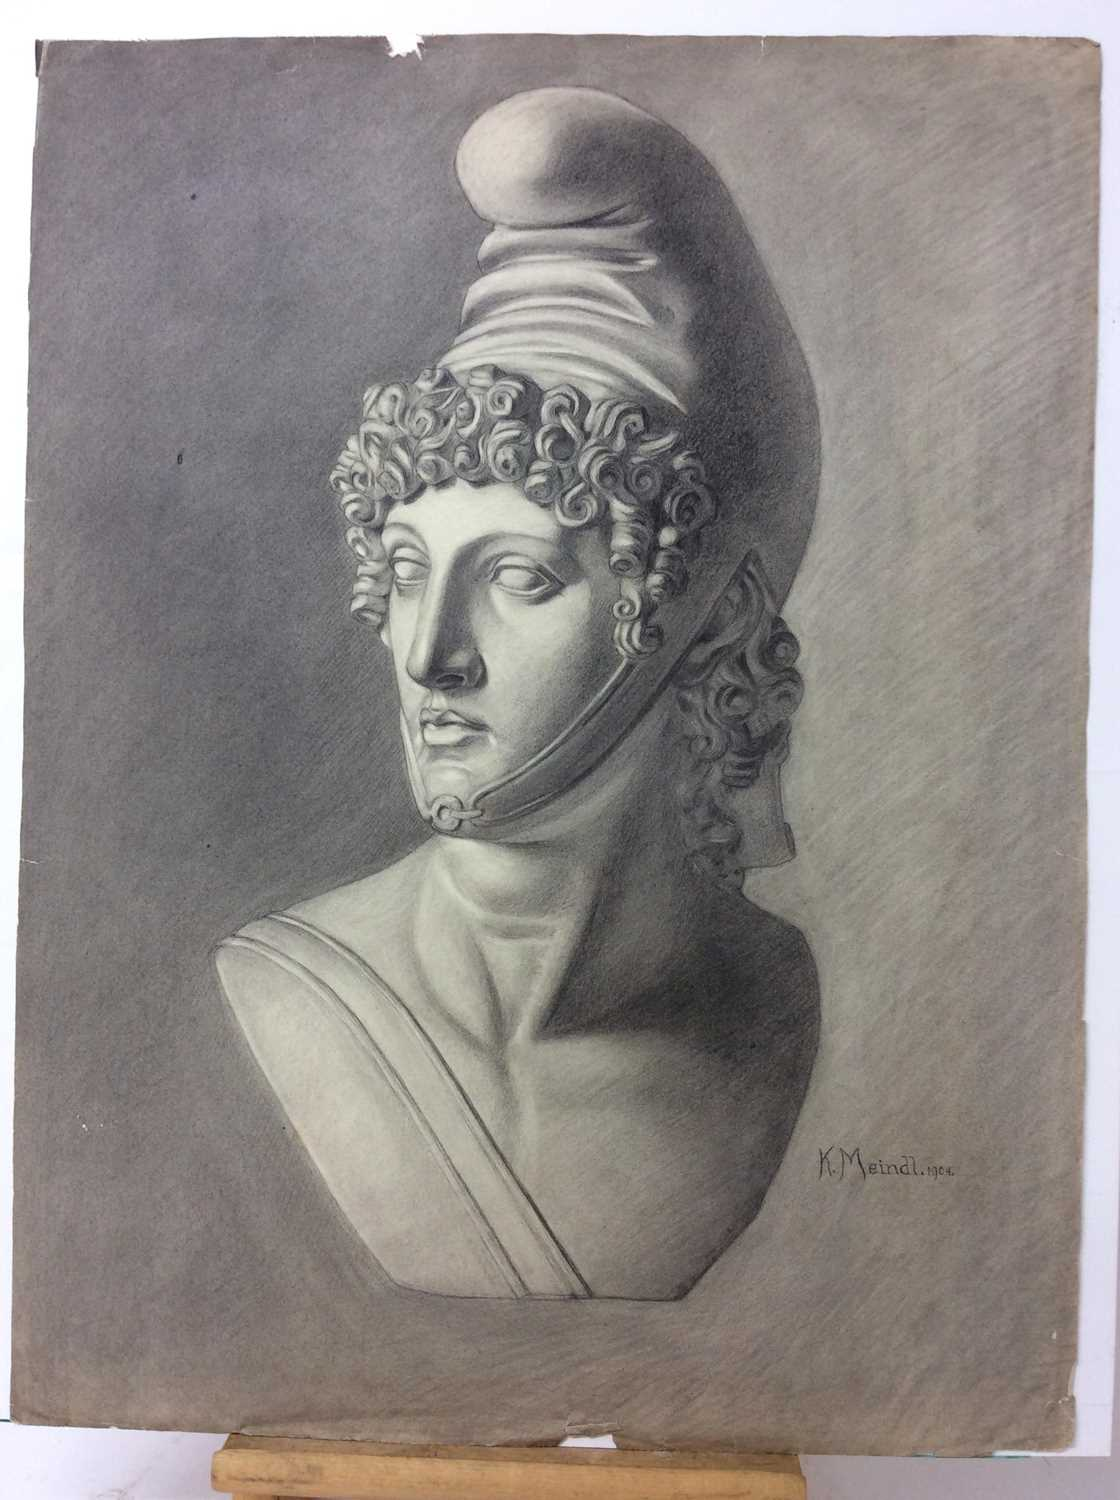 Konrad Meindl (1883-1970) group of eight charcoal works on paper - studies of Classical busts, each - Image 3 of 8